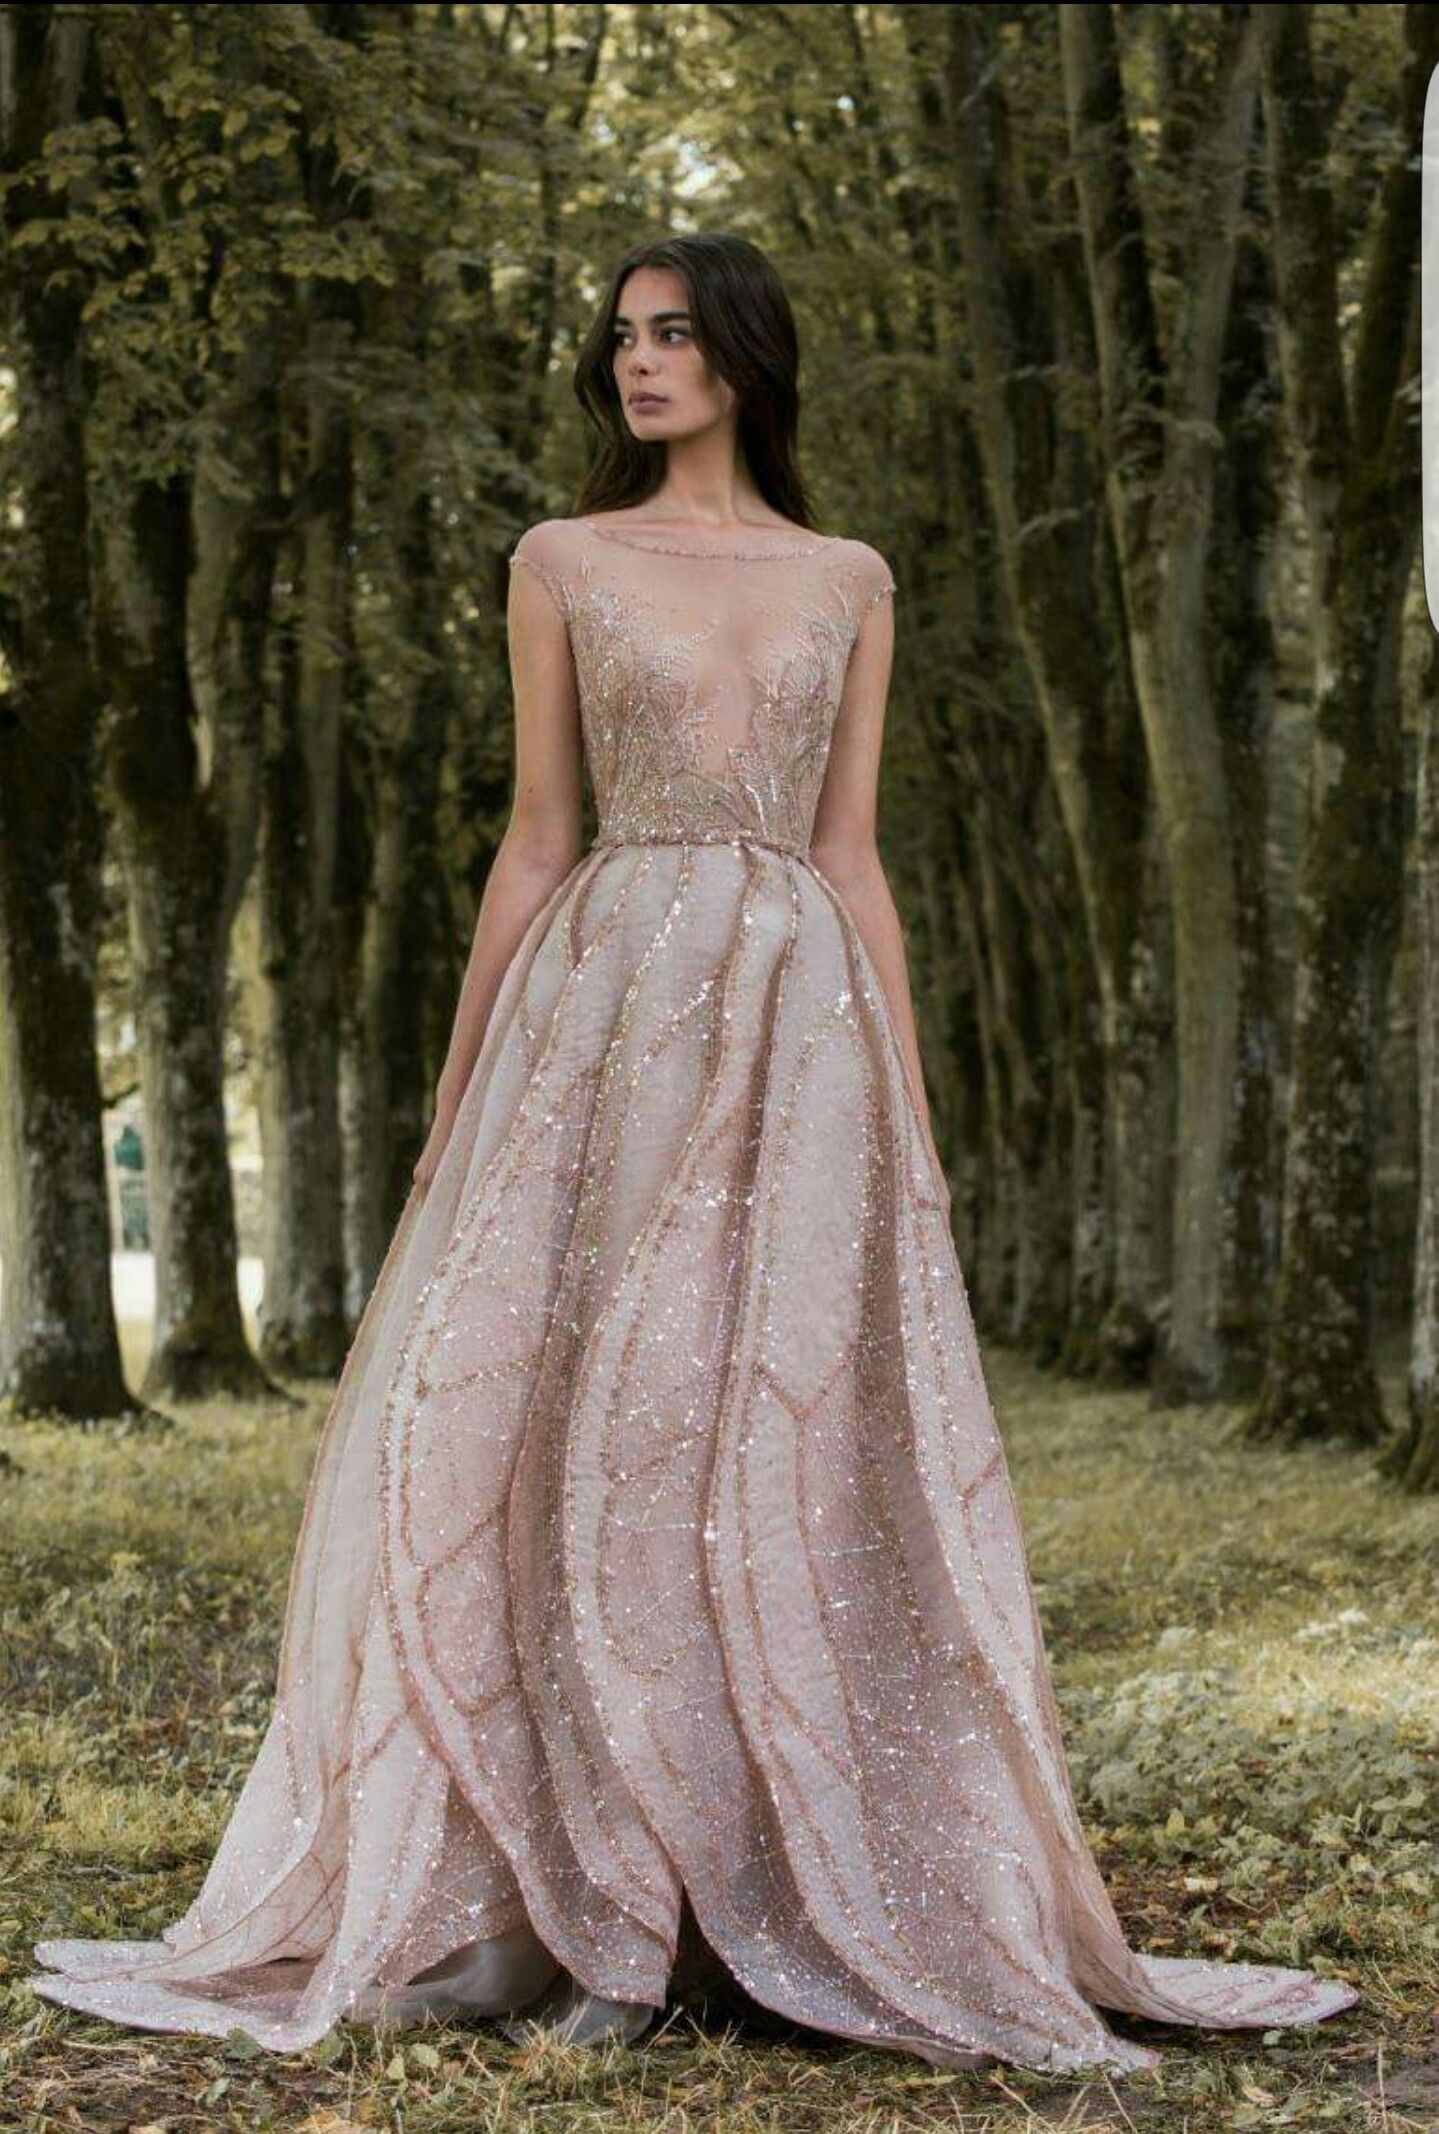 Gold dresses for wedding  Pin by Hailey Maurer on Wedding Gowns  Pinterest  Dresses Wedding